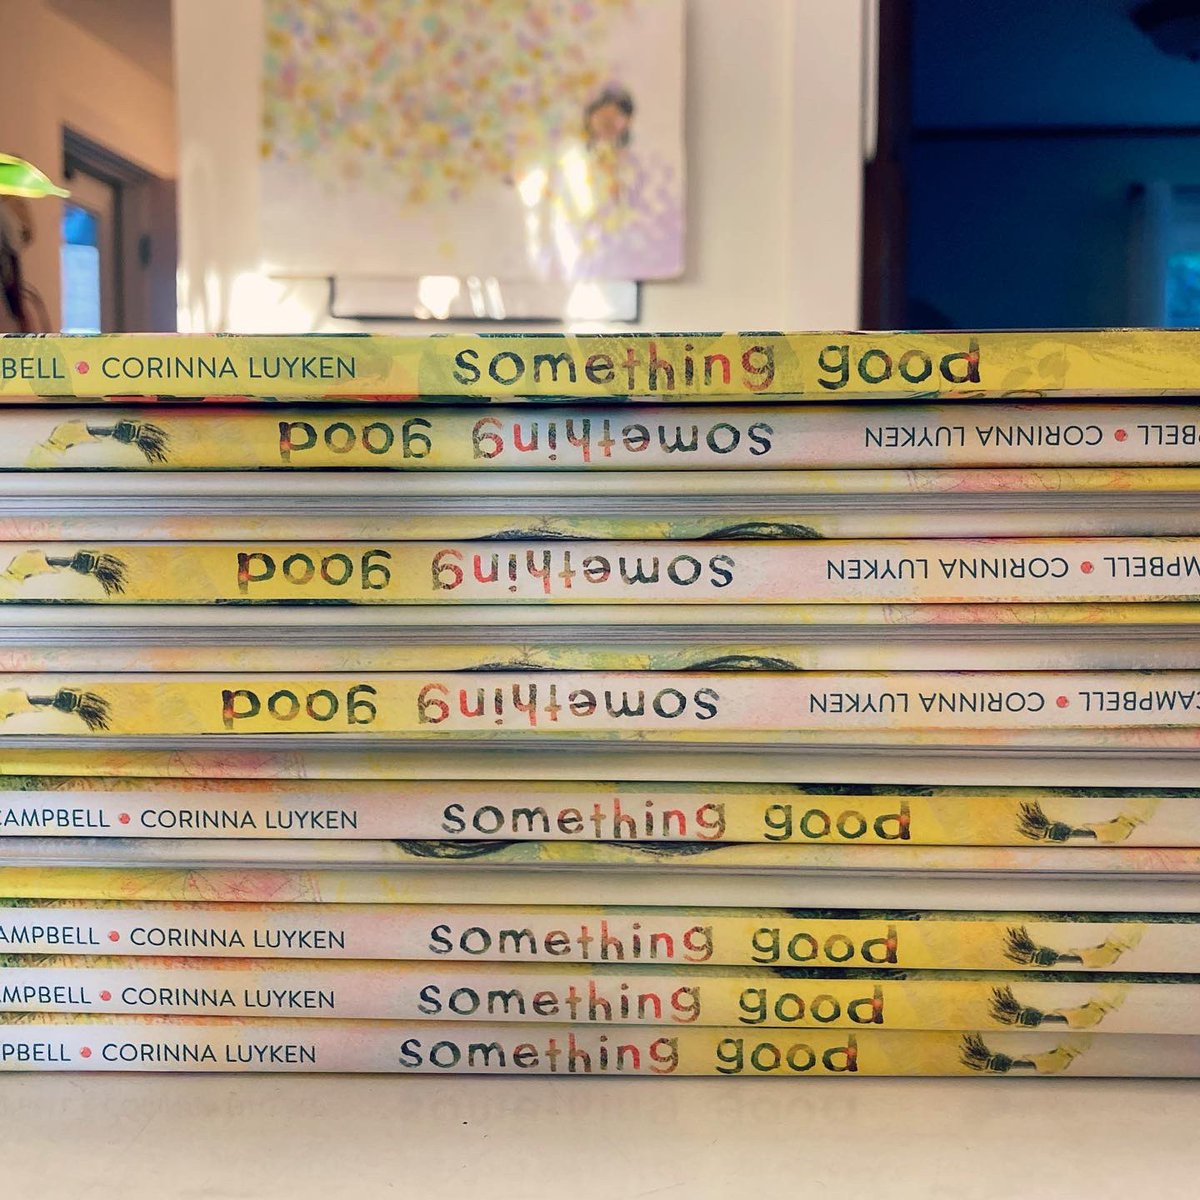 It's here! After a few changes to the release date—now OCT 19—it's ✨✨ to hold a finished copy of SOMETHING GOOD. Look at that spine! Look at that rainbow on the top edging! Thanks to the team at @LittleBrownYR for the attention to detail that makes this such a beauty.